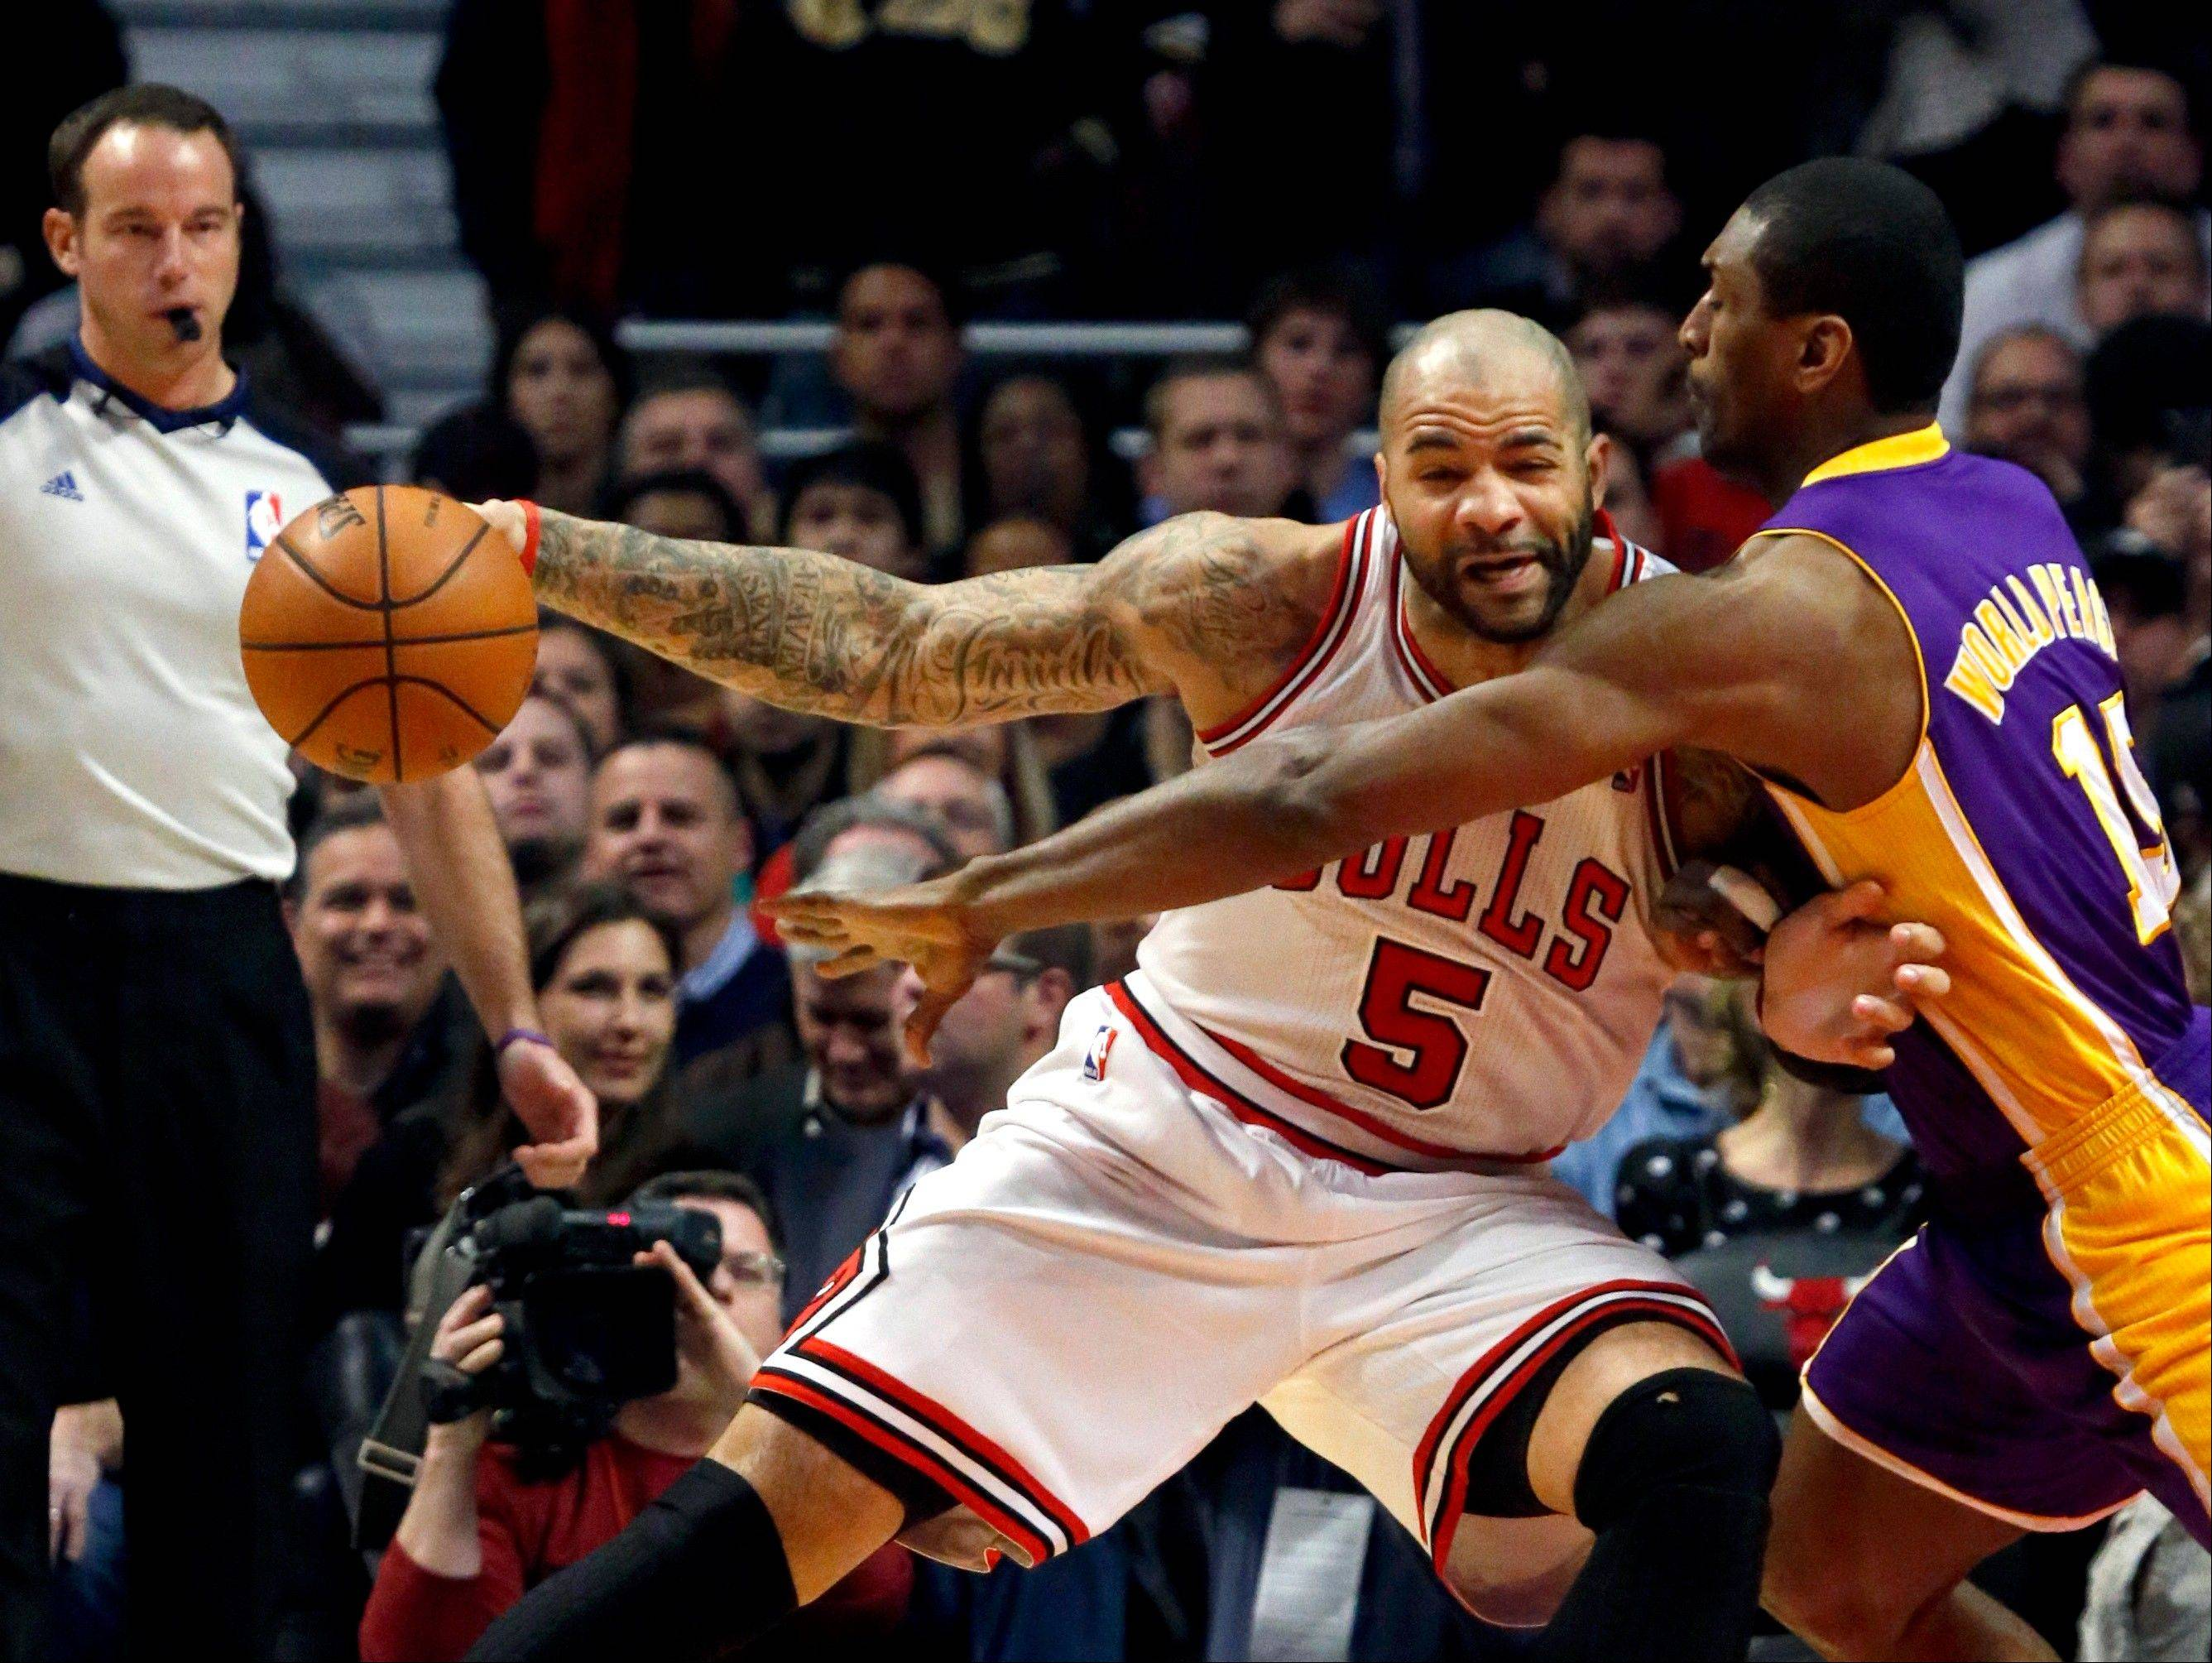 Los Angeles Lakers forward Metta World Peace (15) challenges Chicago Bulls forward Carlos Boozer (5) during the first half of an NBA basketball game, Monday, Jan. 21, 2013, in Chicago.